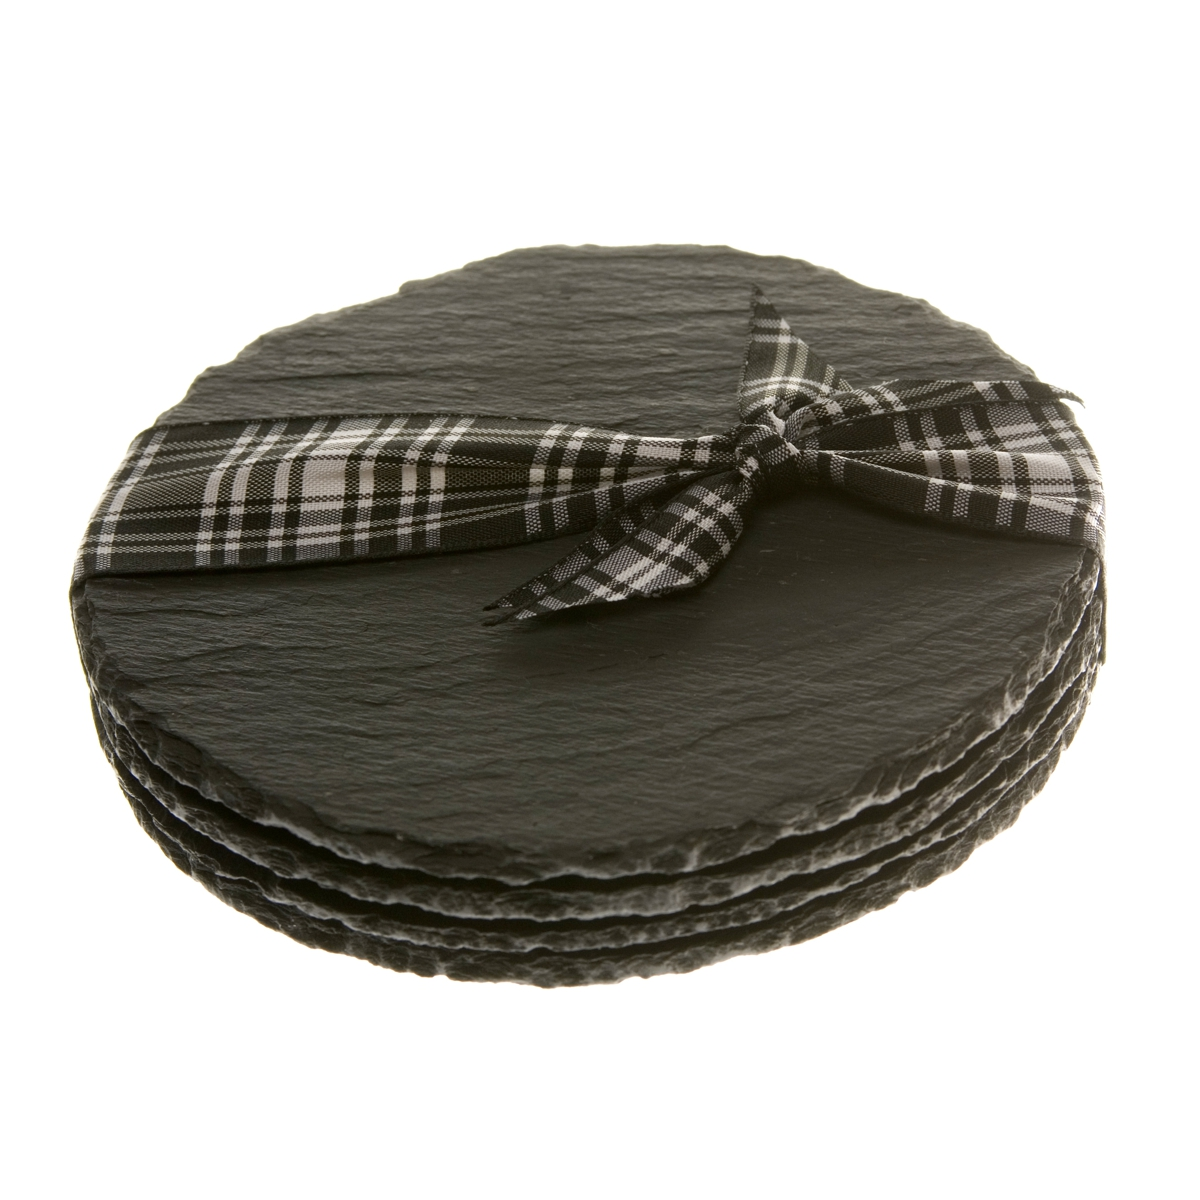 Natural Hand Cut Round Slate Coasters 11cm Diameter Set of 4 + Giftbox